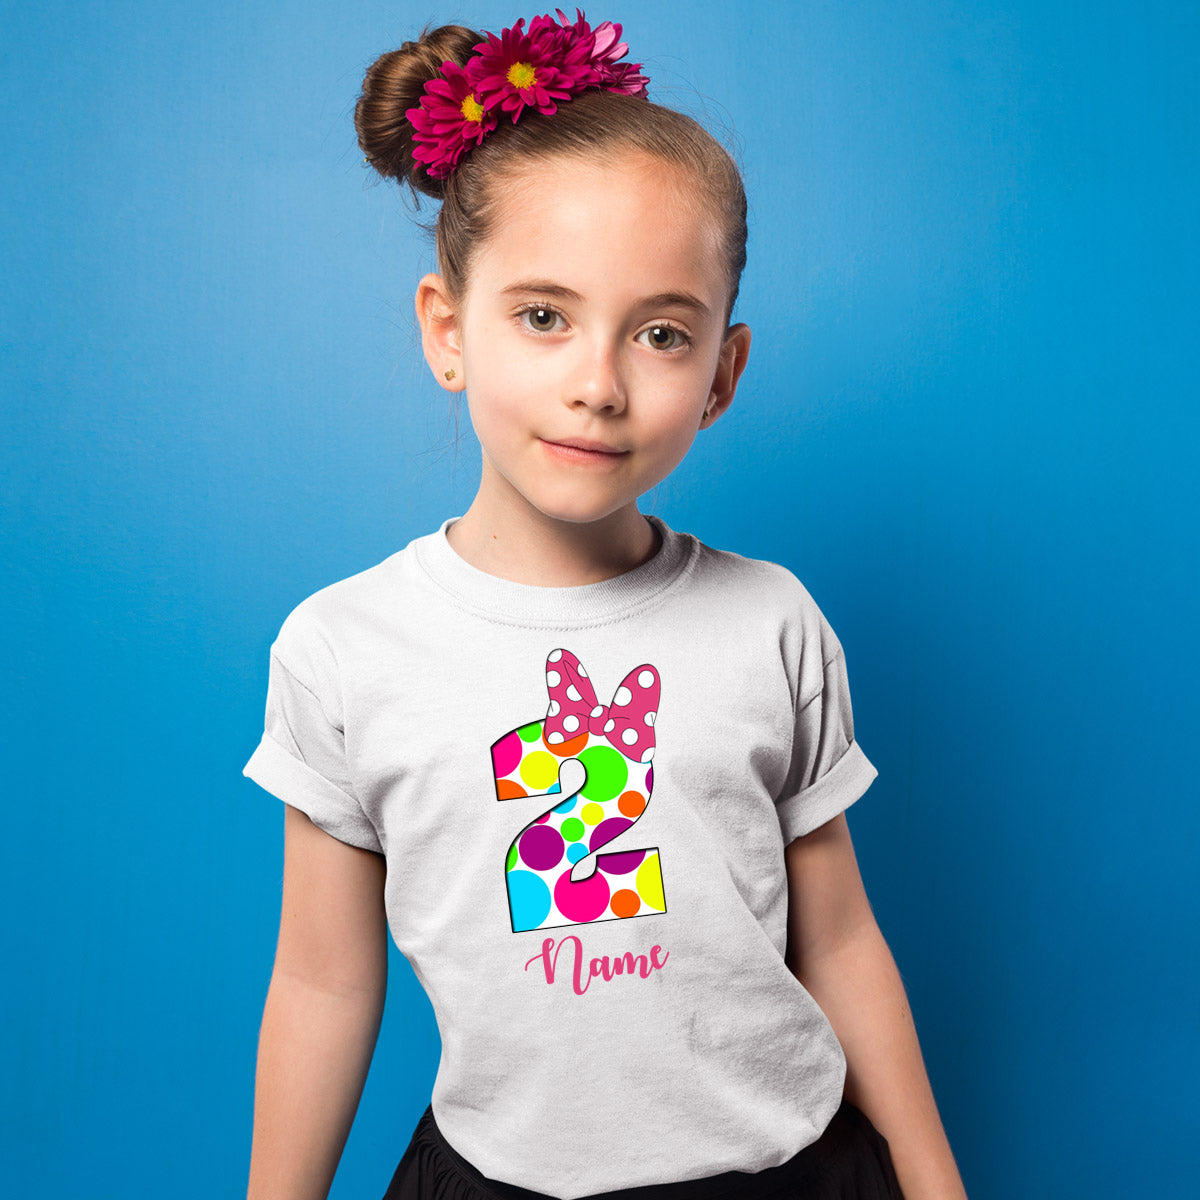 Sprinklecart Personalized Kids Colourful Polka Dotted 2nd Birthday T Shirt Wear, Poly-Cotton (White)